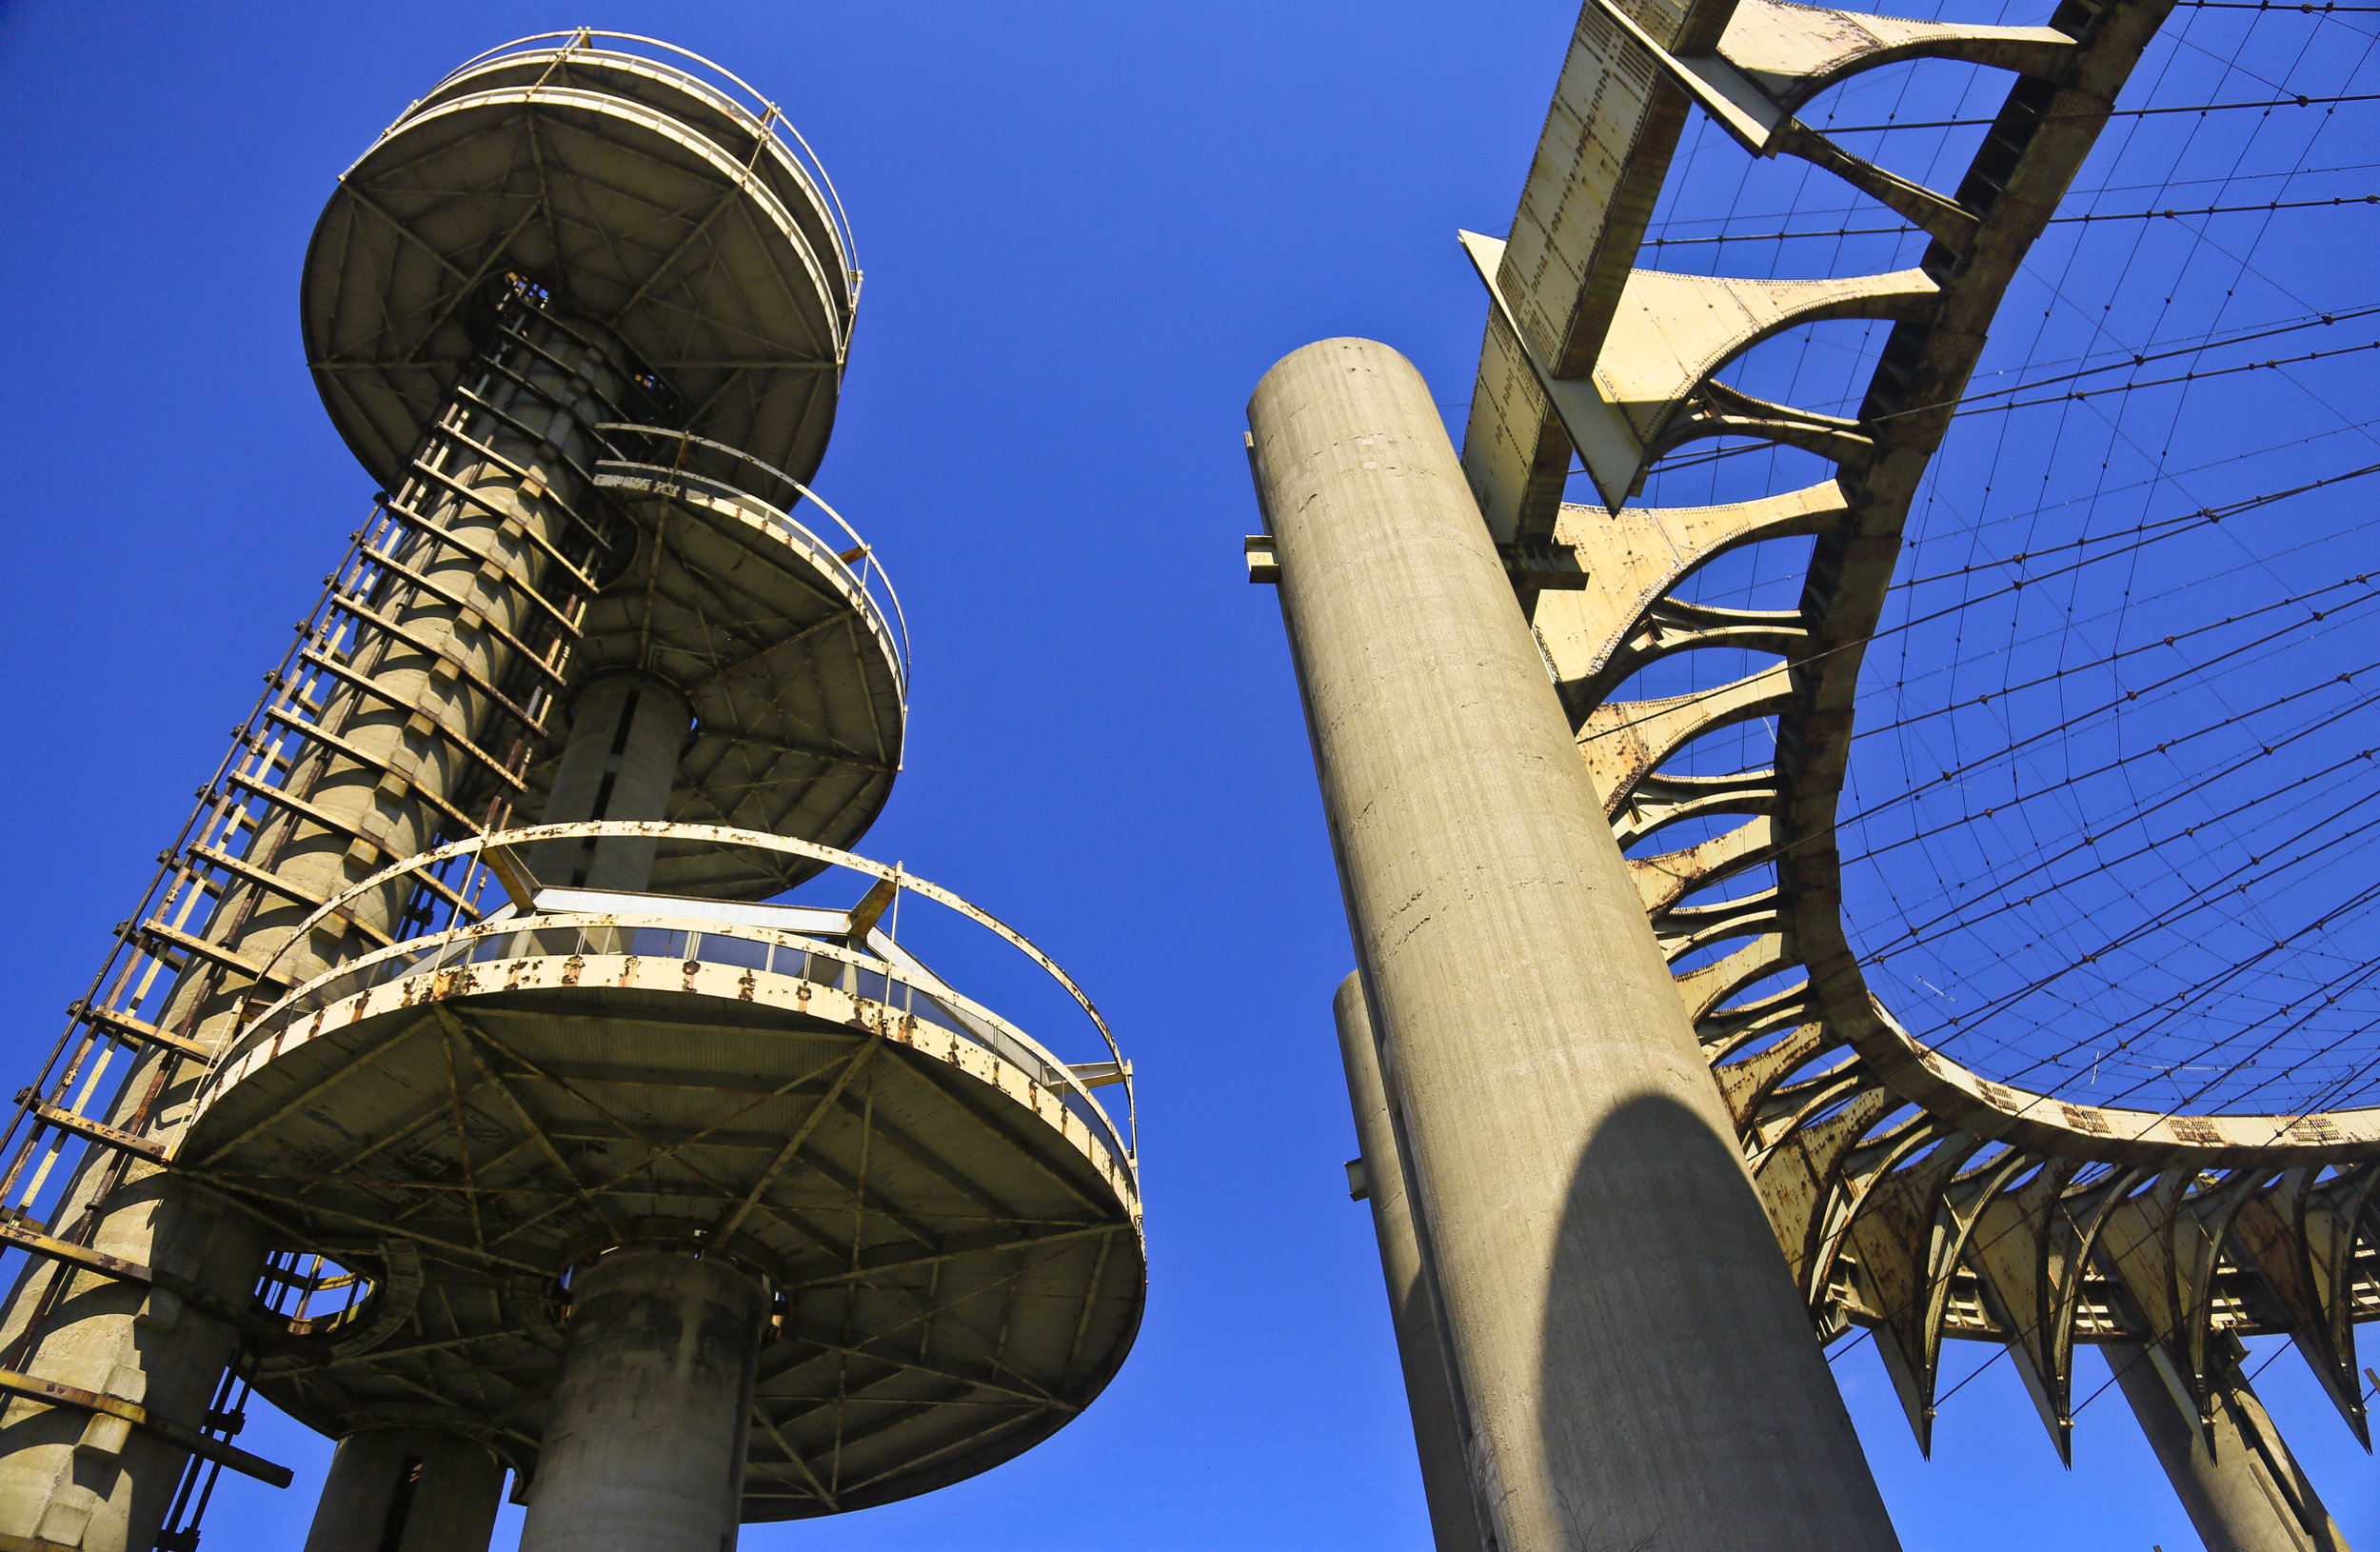 The 1964 World's Fair New York State Pavilion Observation Towers in 2014. AP Photo/Bebeto Matthews.